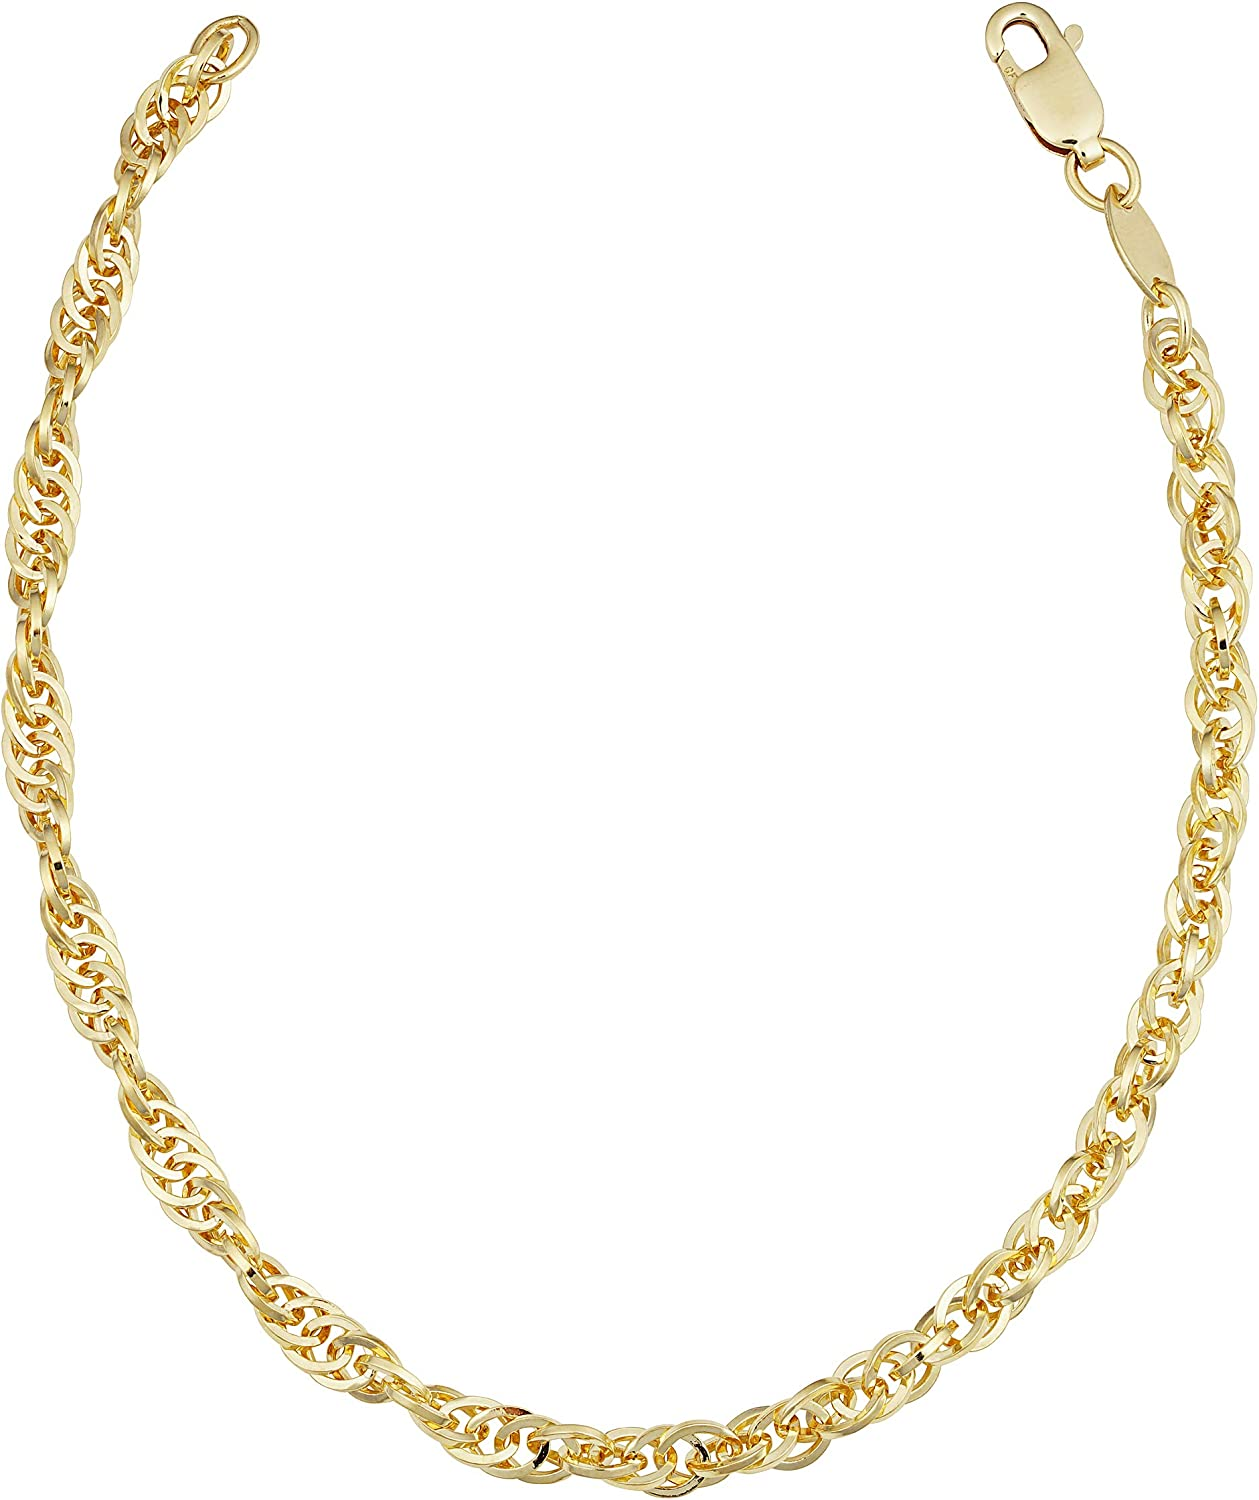 14k Max 89% OFF Yellow shopping Gold Filled Double Cable for Bracelet Wome Link Chain